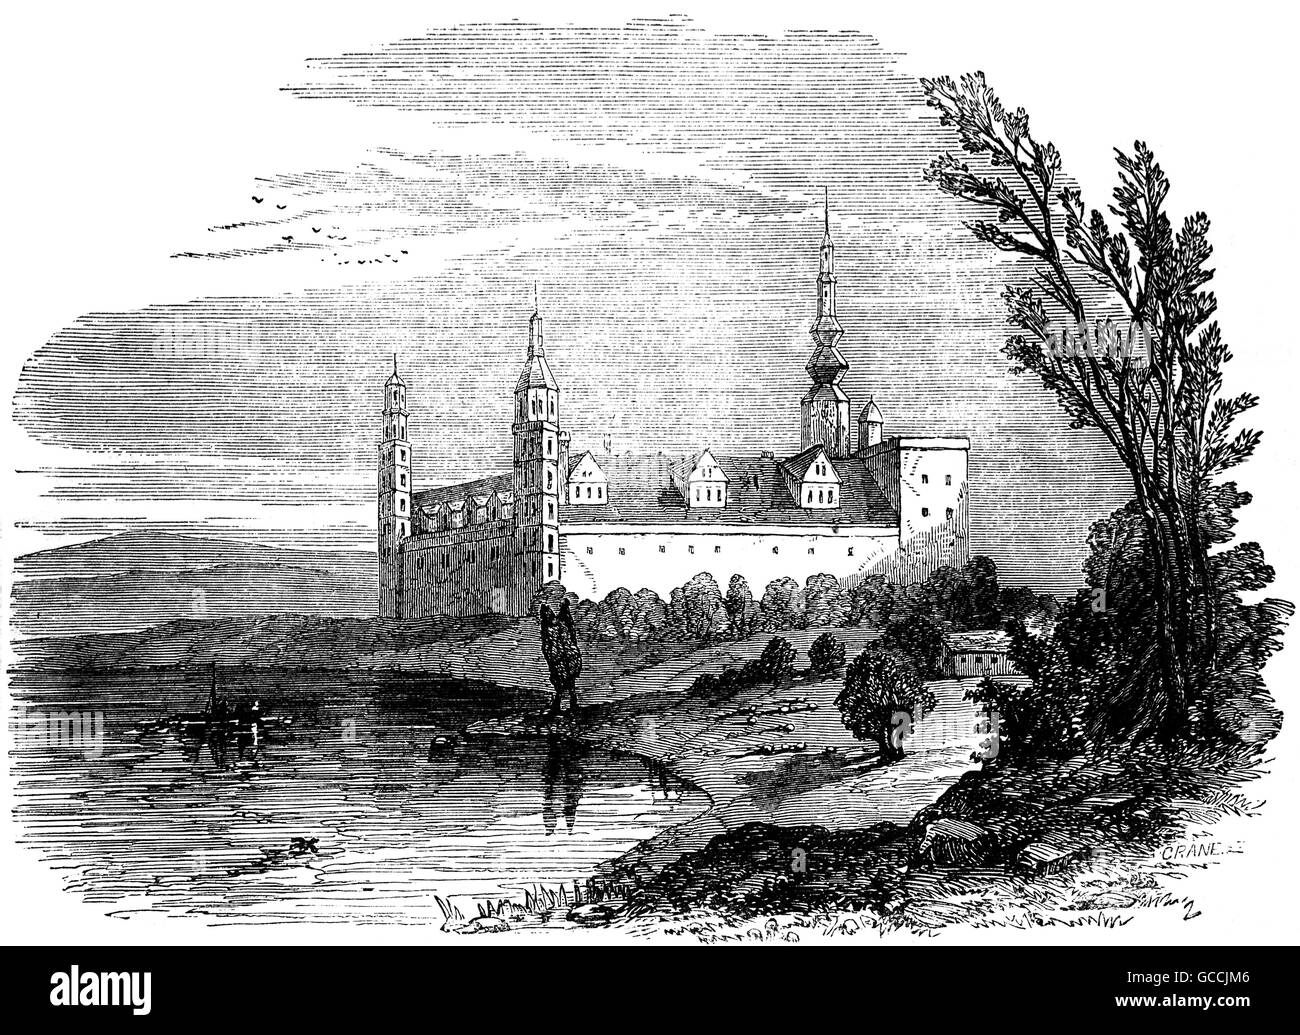 18th Century view of Kronborg Castle in Helsingør, Denmark, immortalized as Elsinore in William Shakespeare's - Stock Image